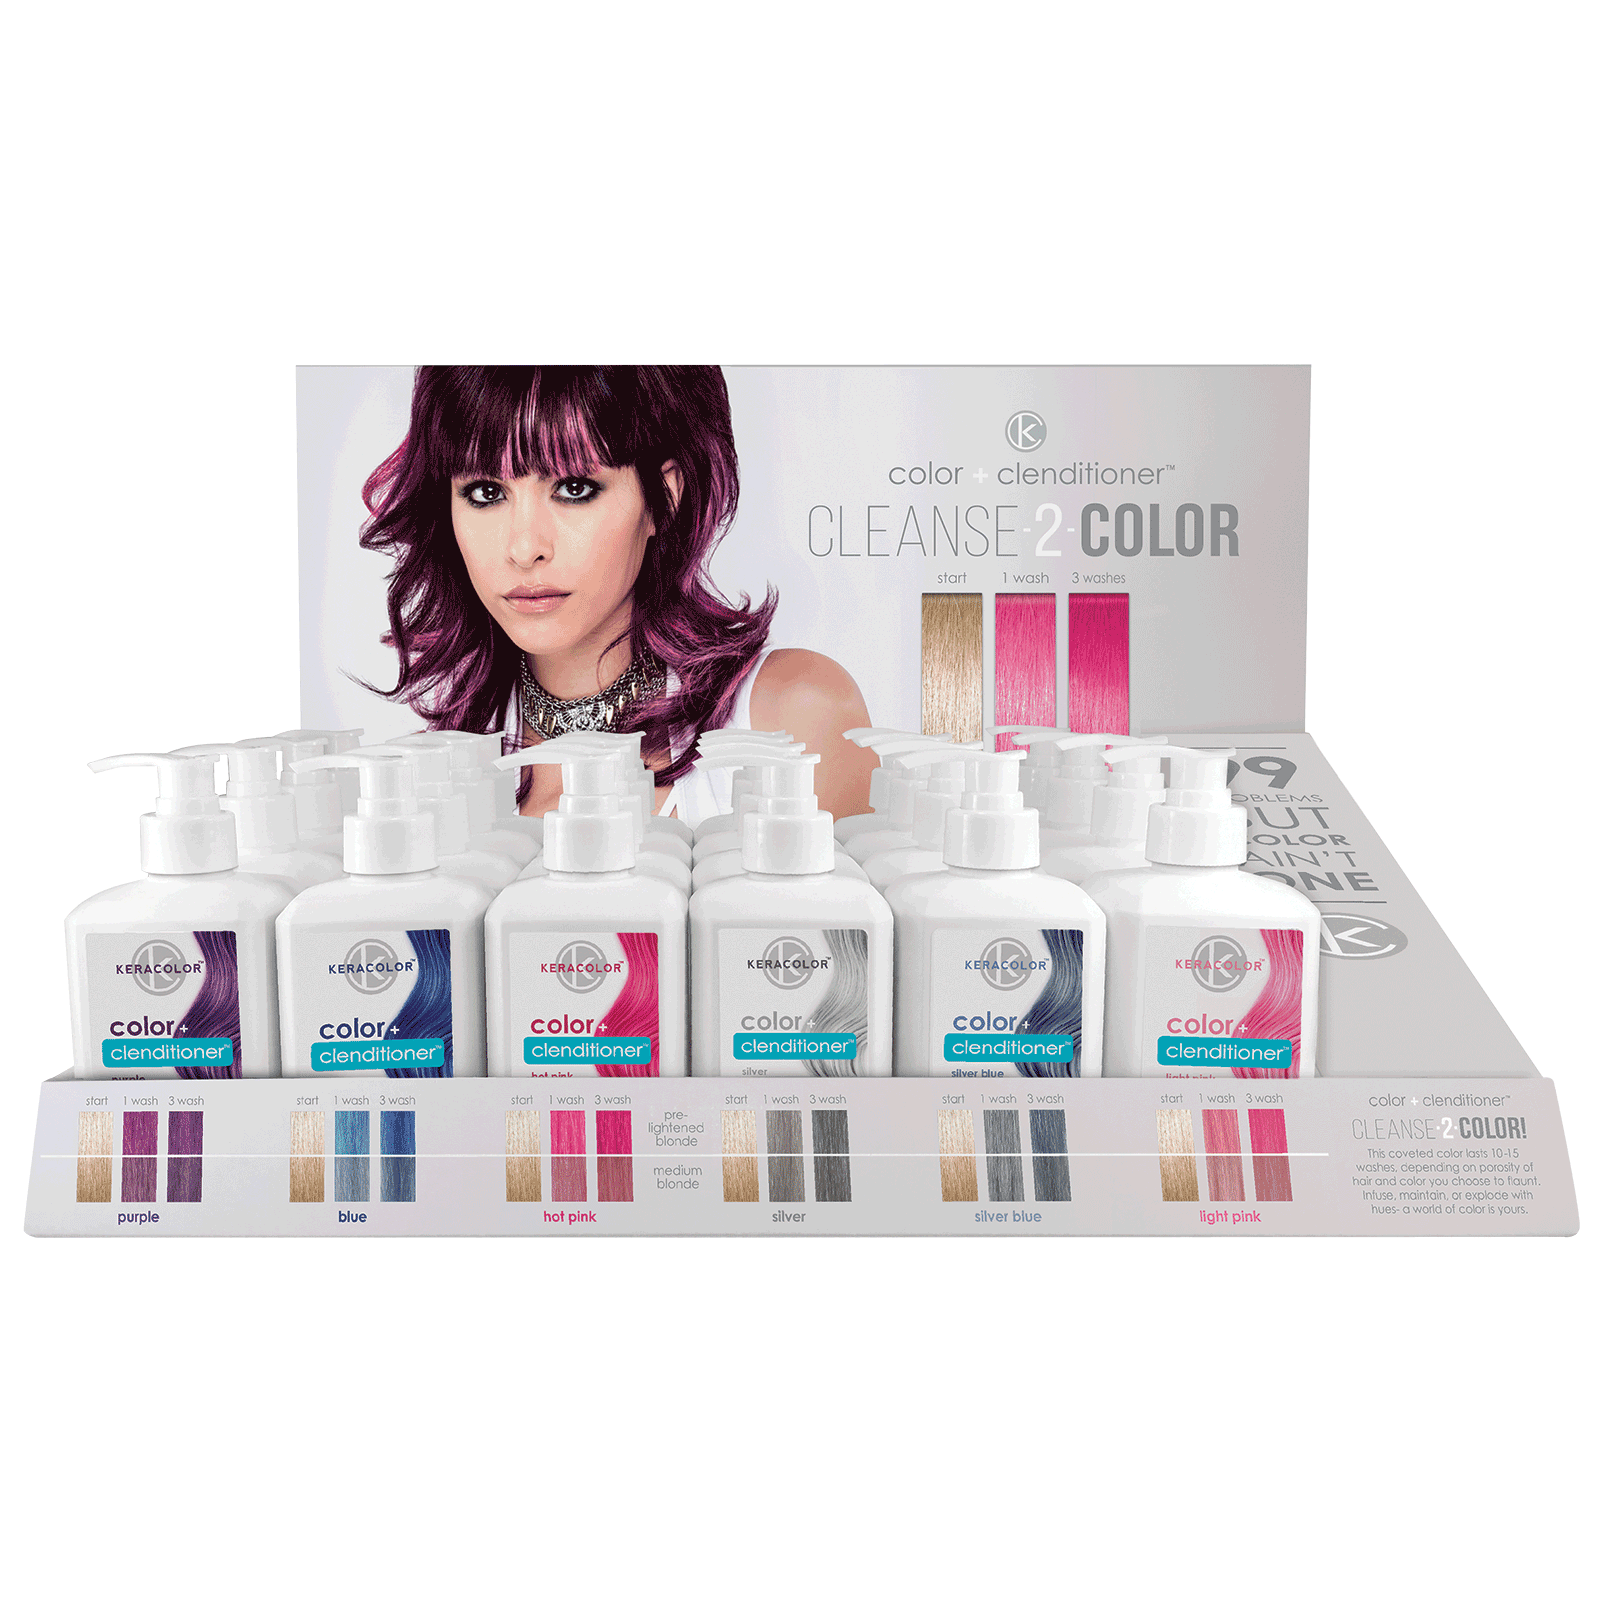 Color clenditioner salon intro keracolor cosmoprof for Beauty salon introduction